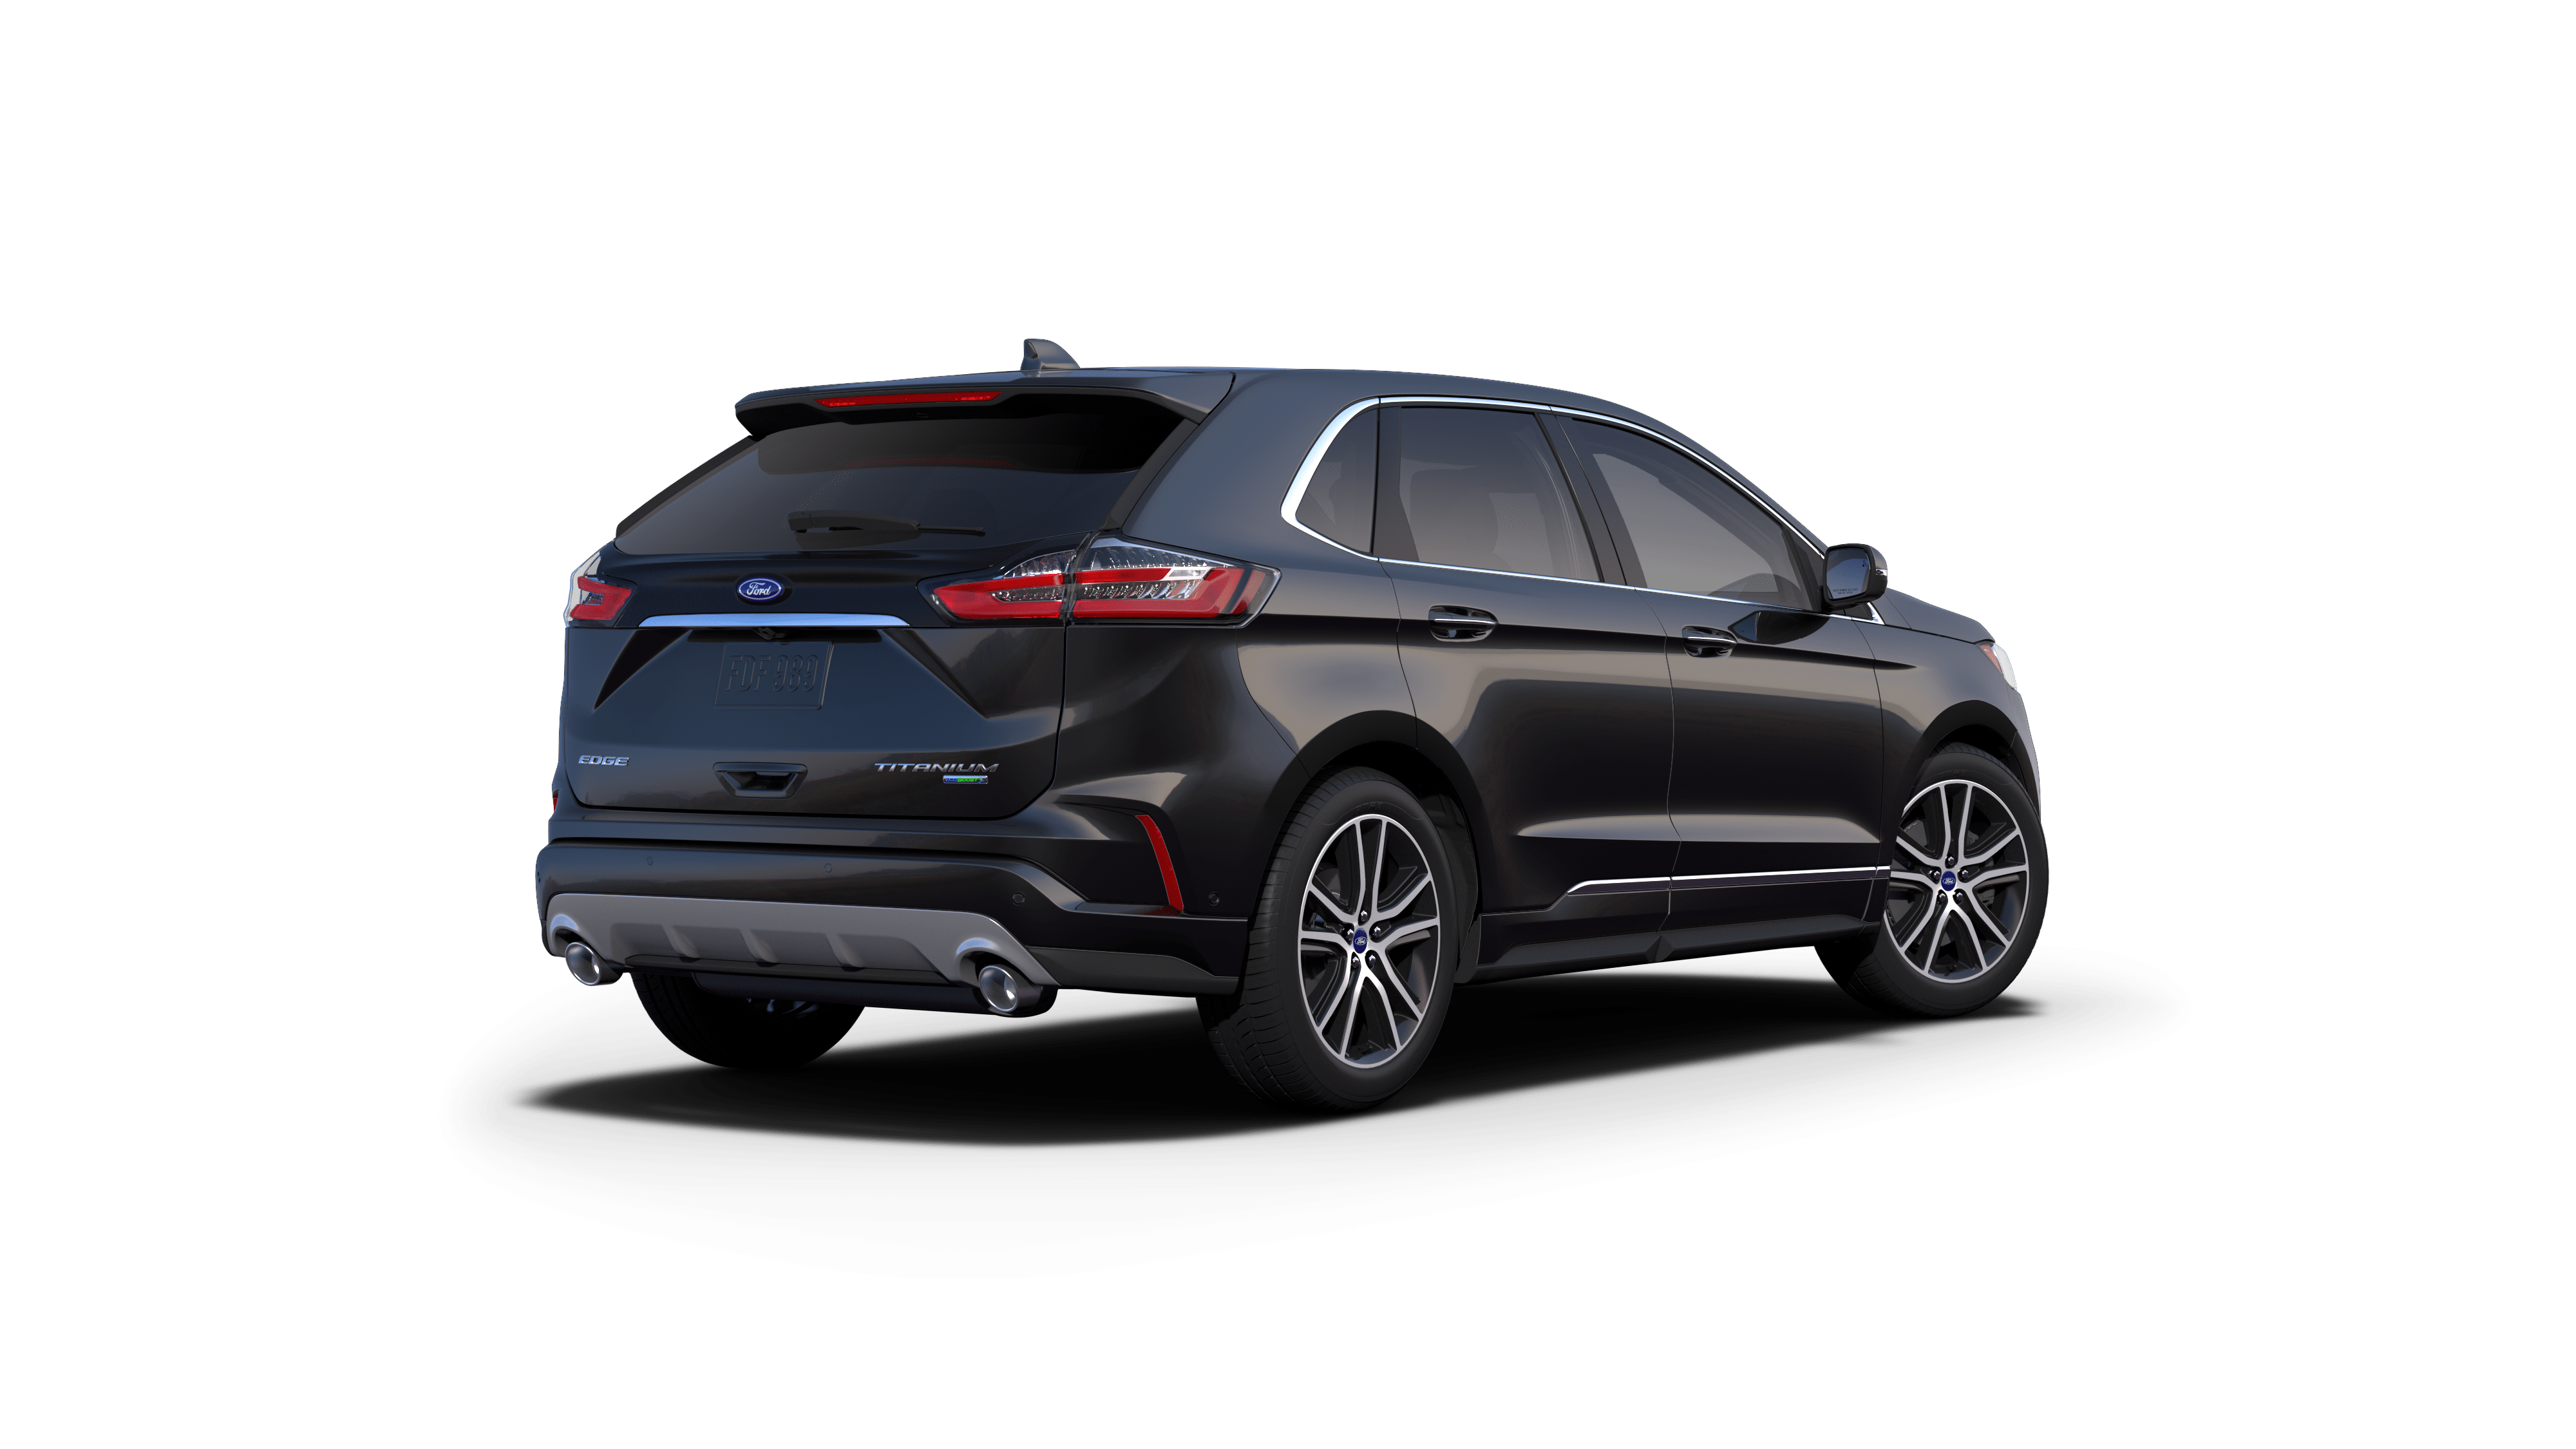 Ford Dealership Peoria Il >> 2019 Ford Edge for sale in East Peoria - 2FMPK3K91KBC33002 - Uftring Ford, Inc.